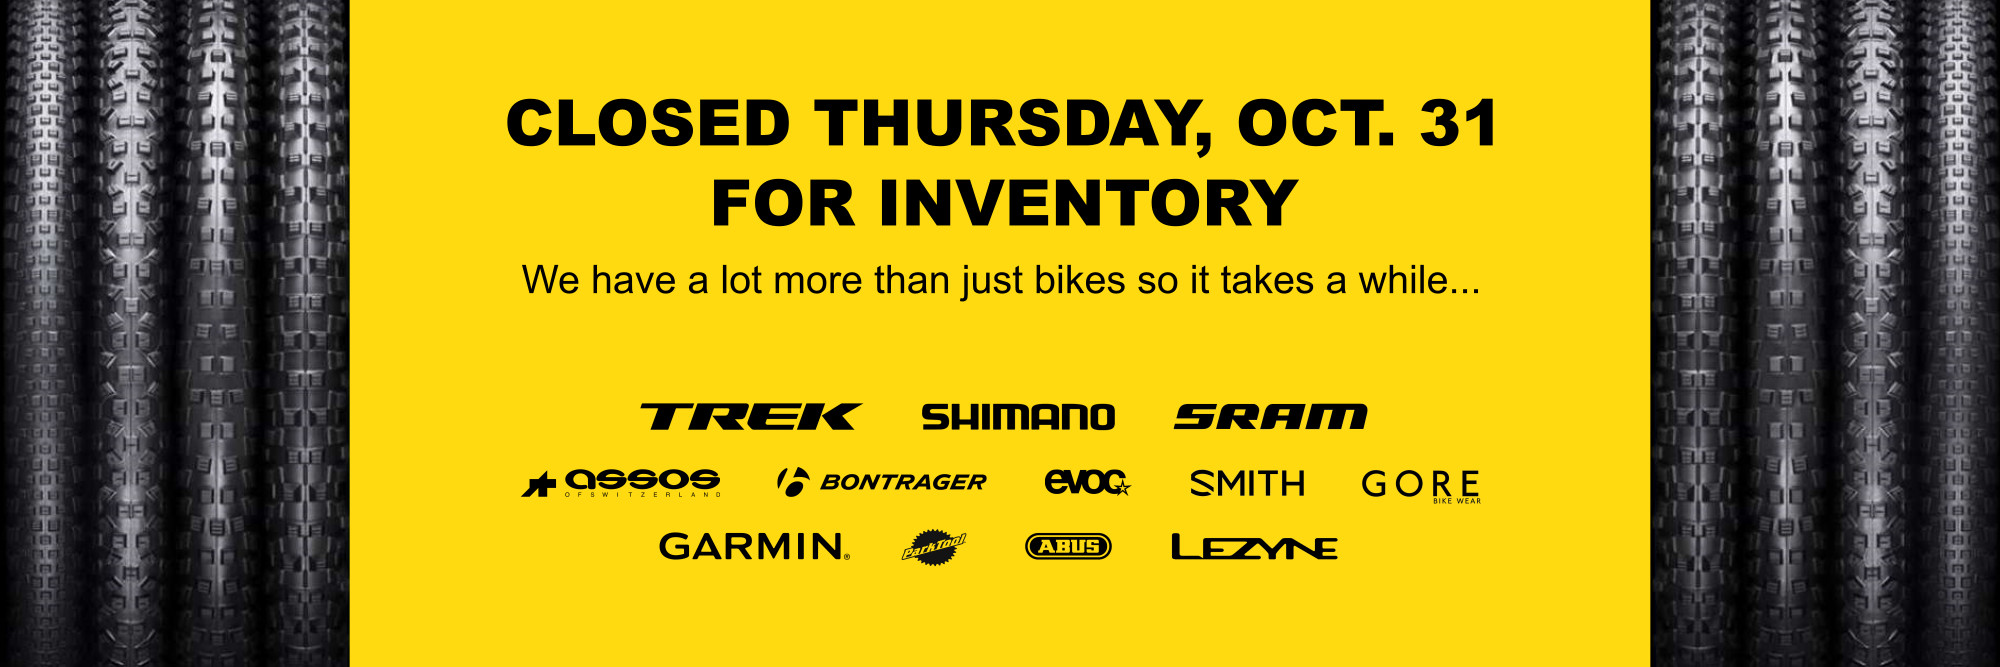 CLOSED for inventory Thursday, Oct 31